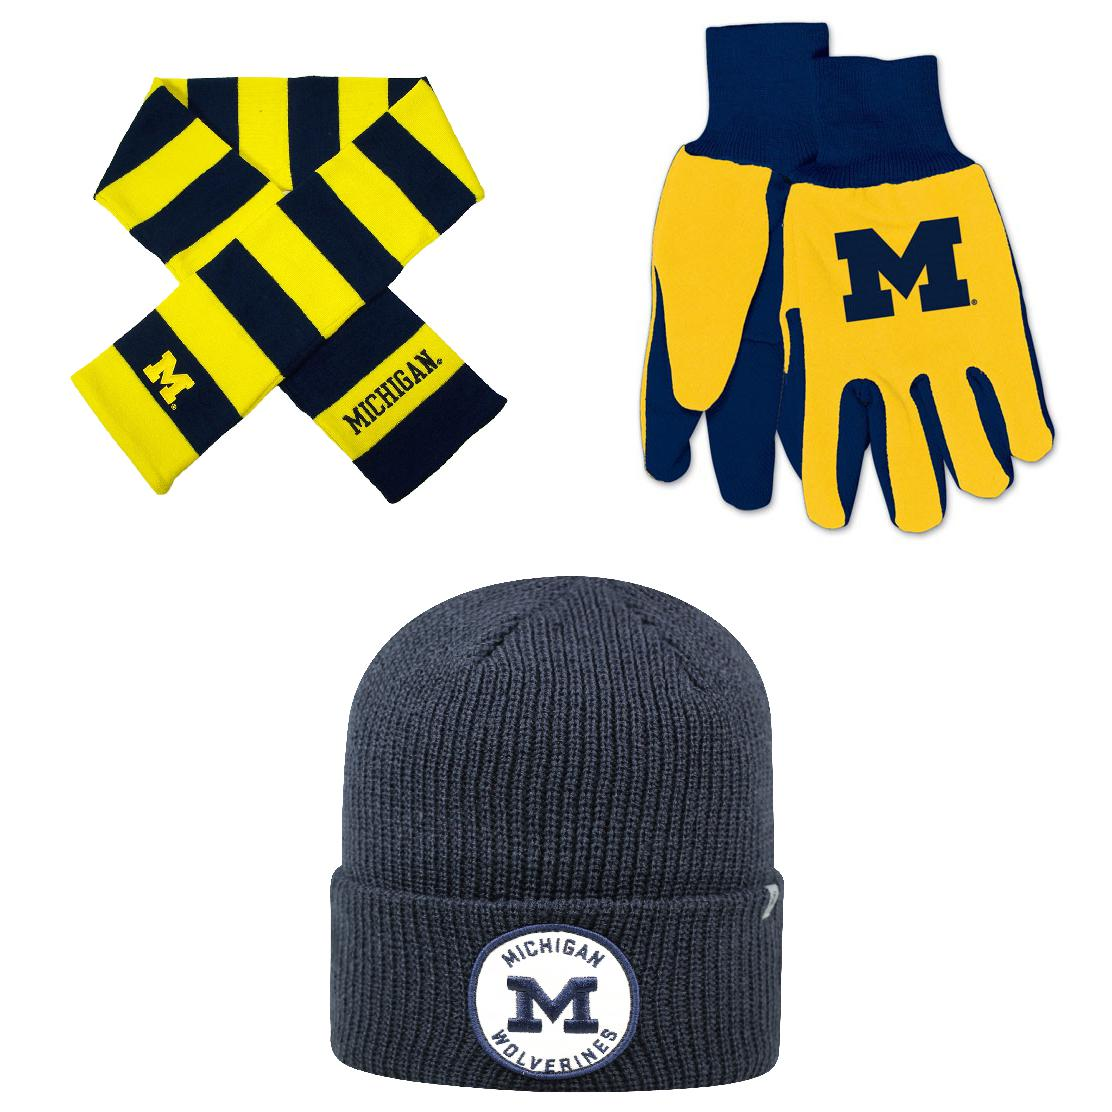 NCAA Michigan Wolverines Wharf Beanie Hat Grip Work Glove And Striped Rugby Scarf 3 Pack Bundle